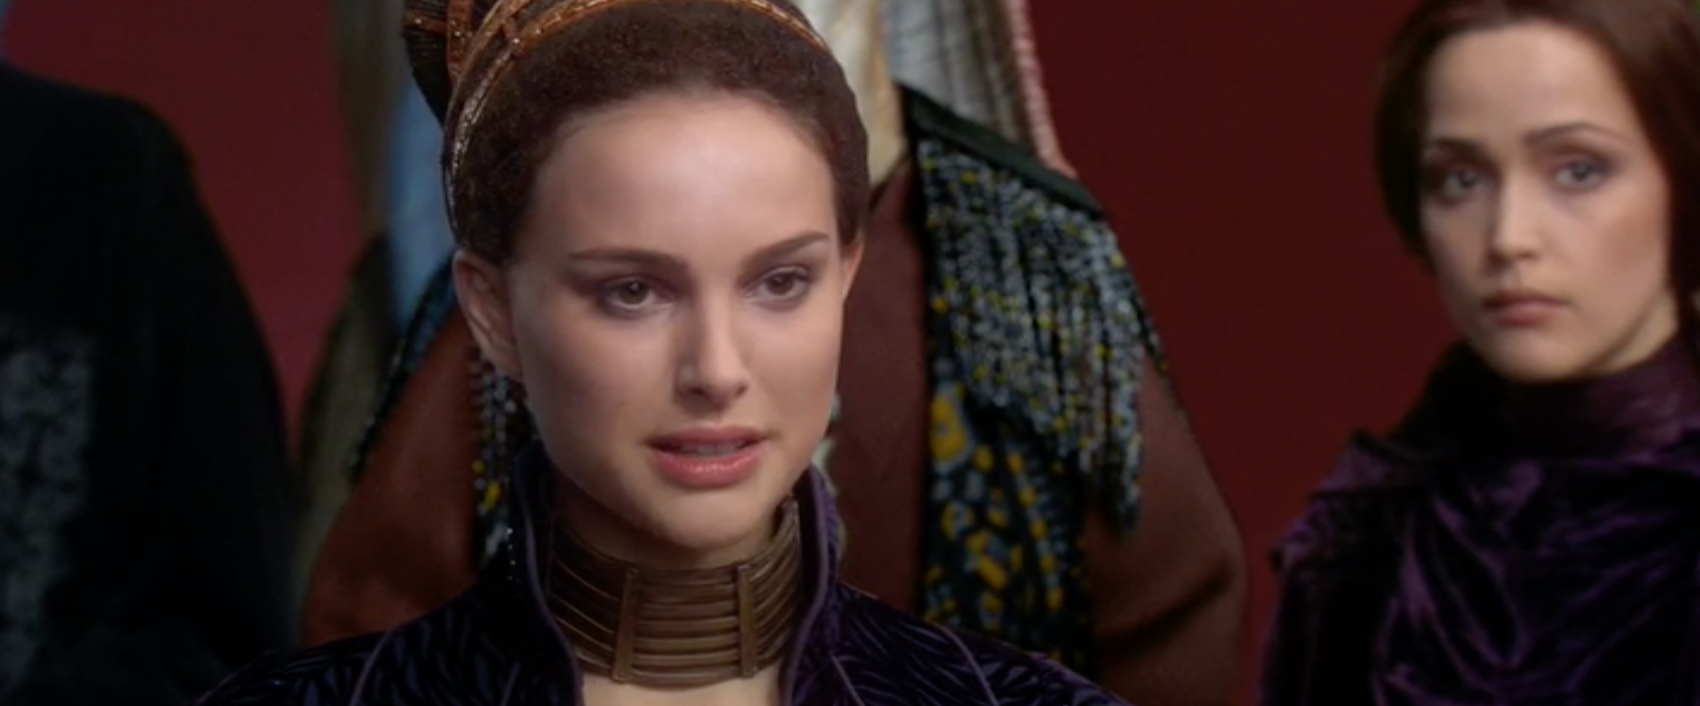 Padmé and Dormé